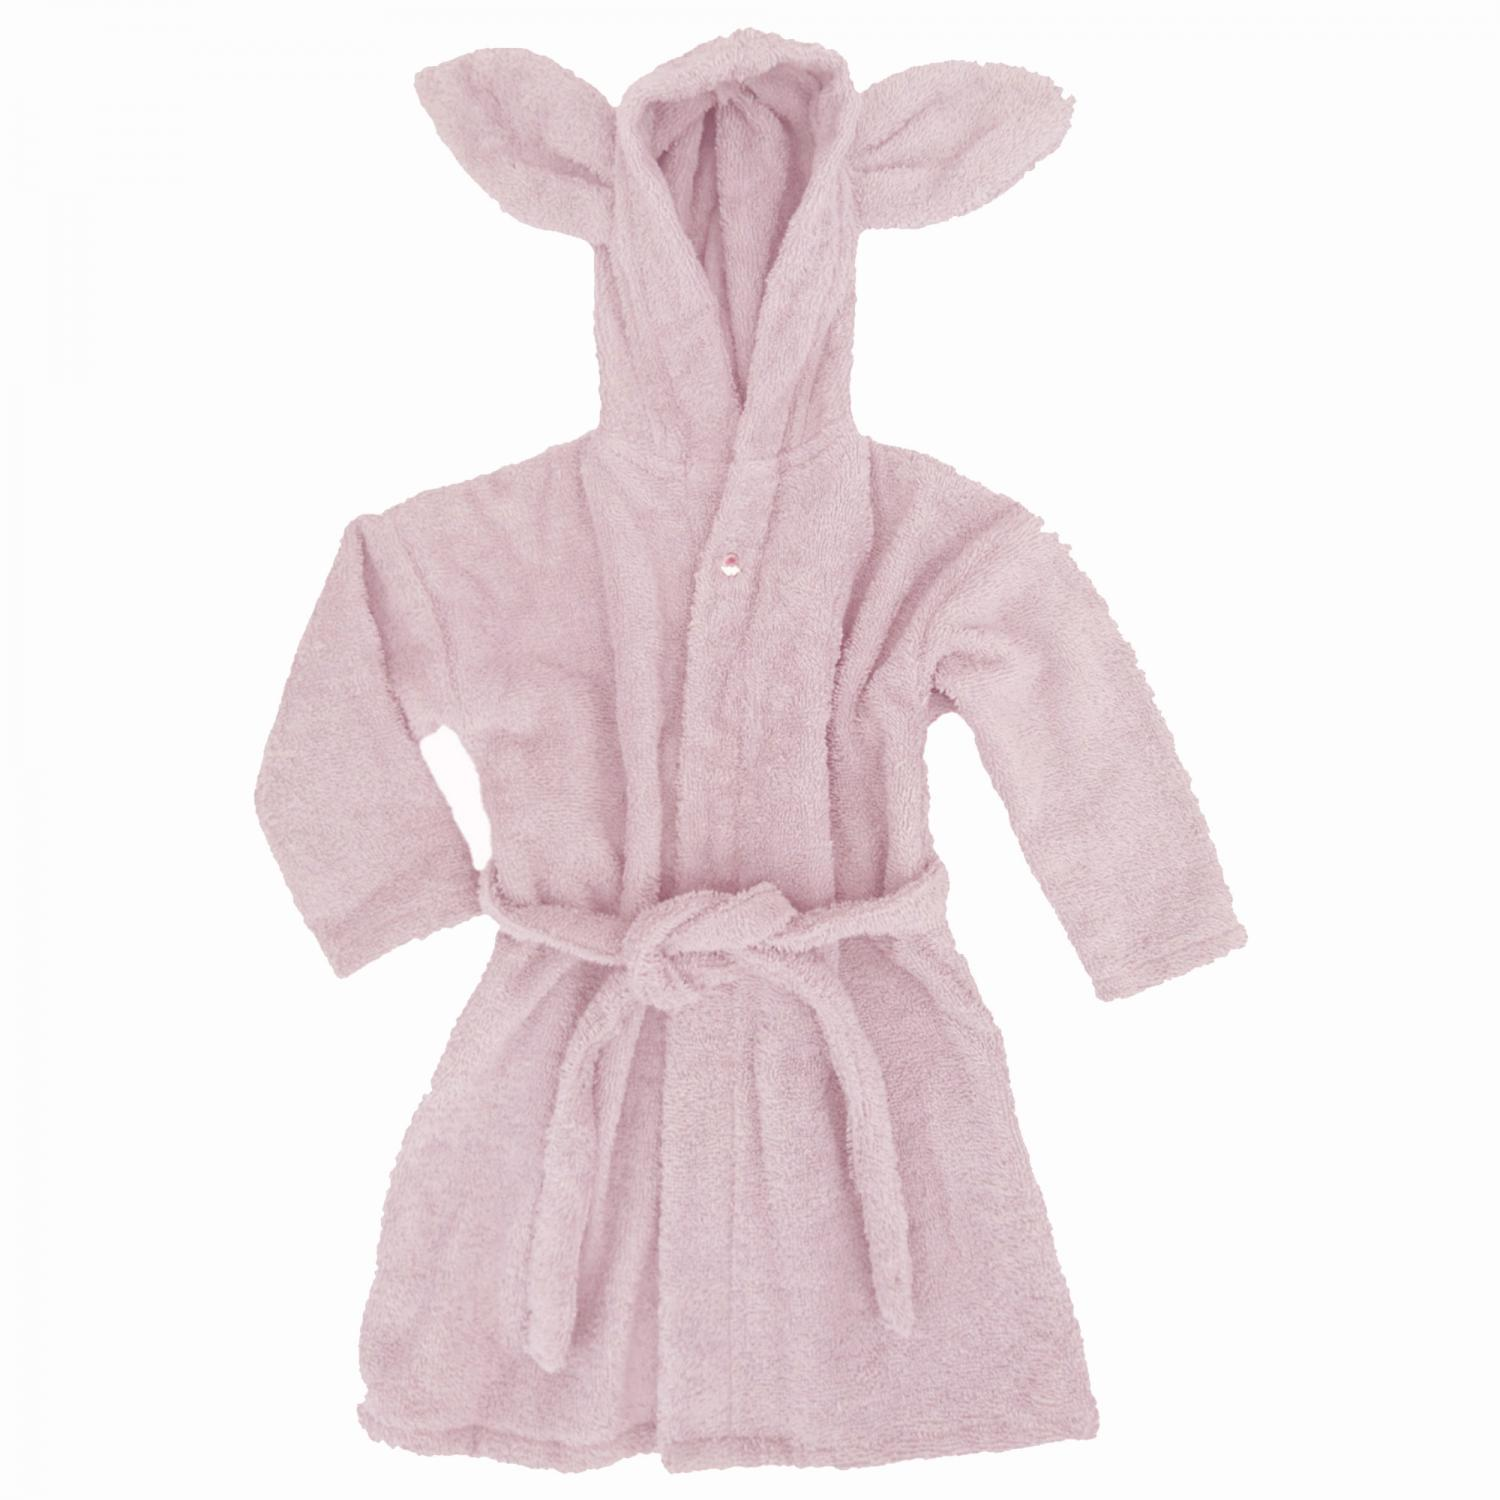 Bath robe rabbit pink